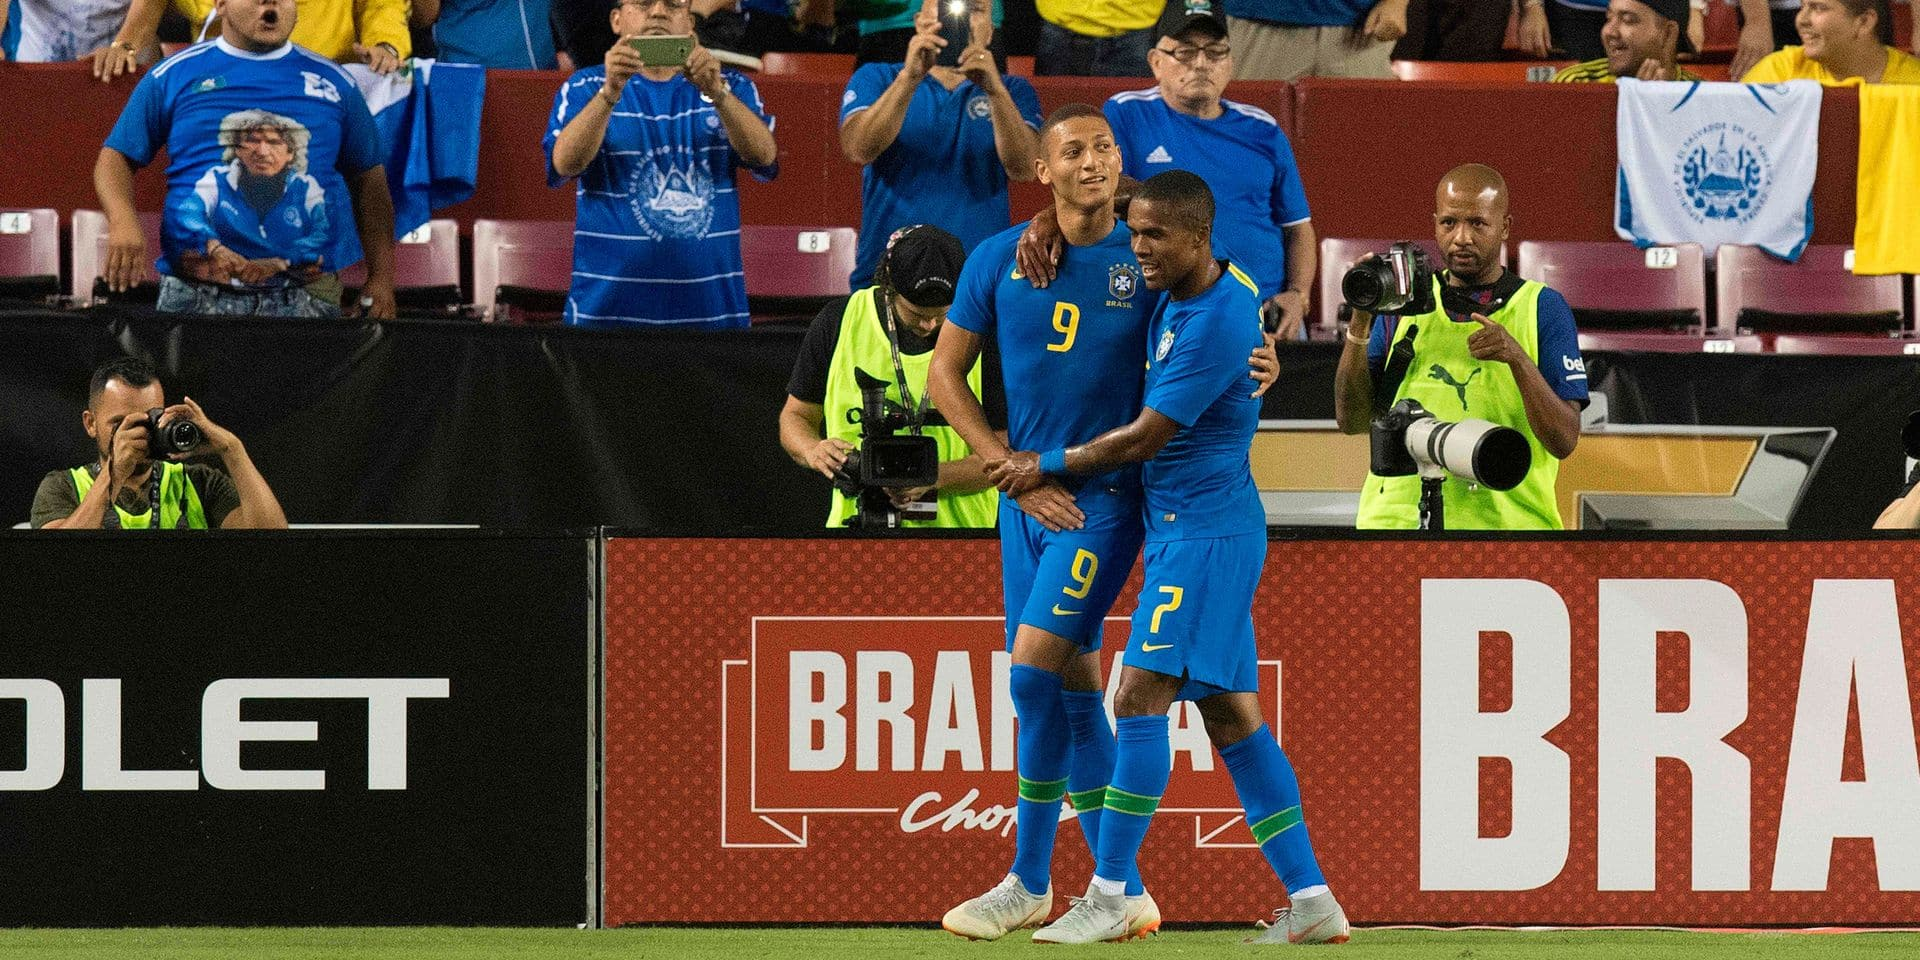 Brazil's Richarlison (C) celebrates his goal with teammate Douglas Costa (R) against El Salvador during an international friendly at FedEx Field in Landover, MD, on September 11, 2018. (Photo by JIM WATSON / AFP)